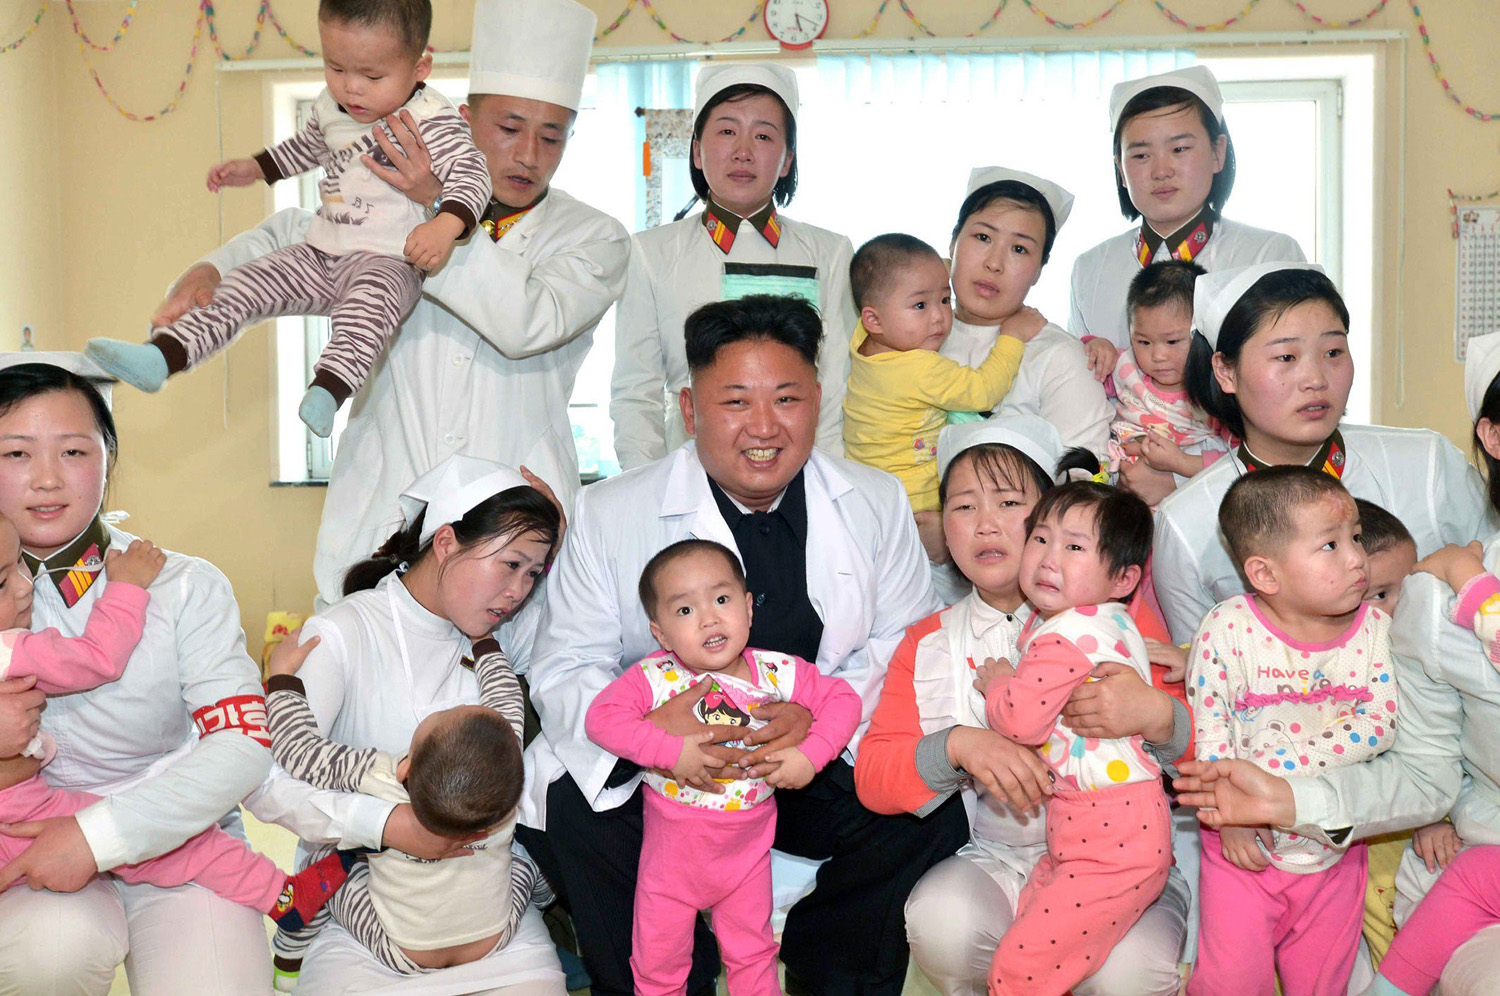 This undated picture released by North Korea's official Korean Central News Agency (KCNA) on May 19, 2014 shows North Korean leader Kim Jong-Un (C) meeting with children at a baby home and orphanage as he visits the Taesongsan General Hospital in Pyongyang.